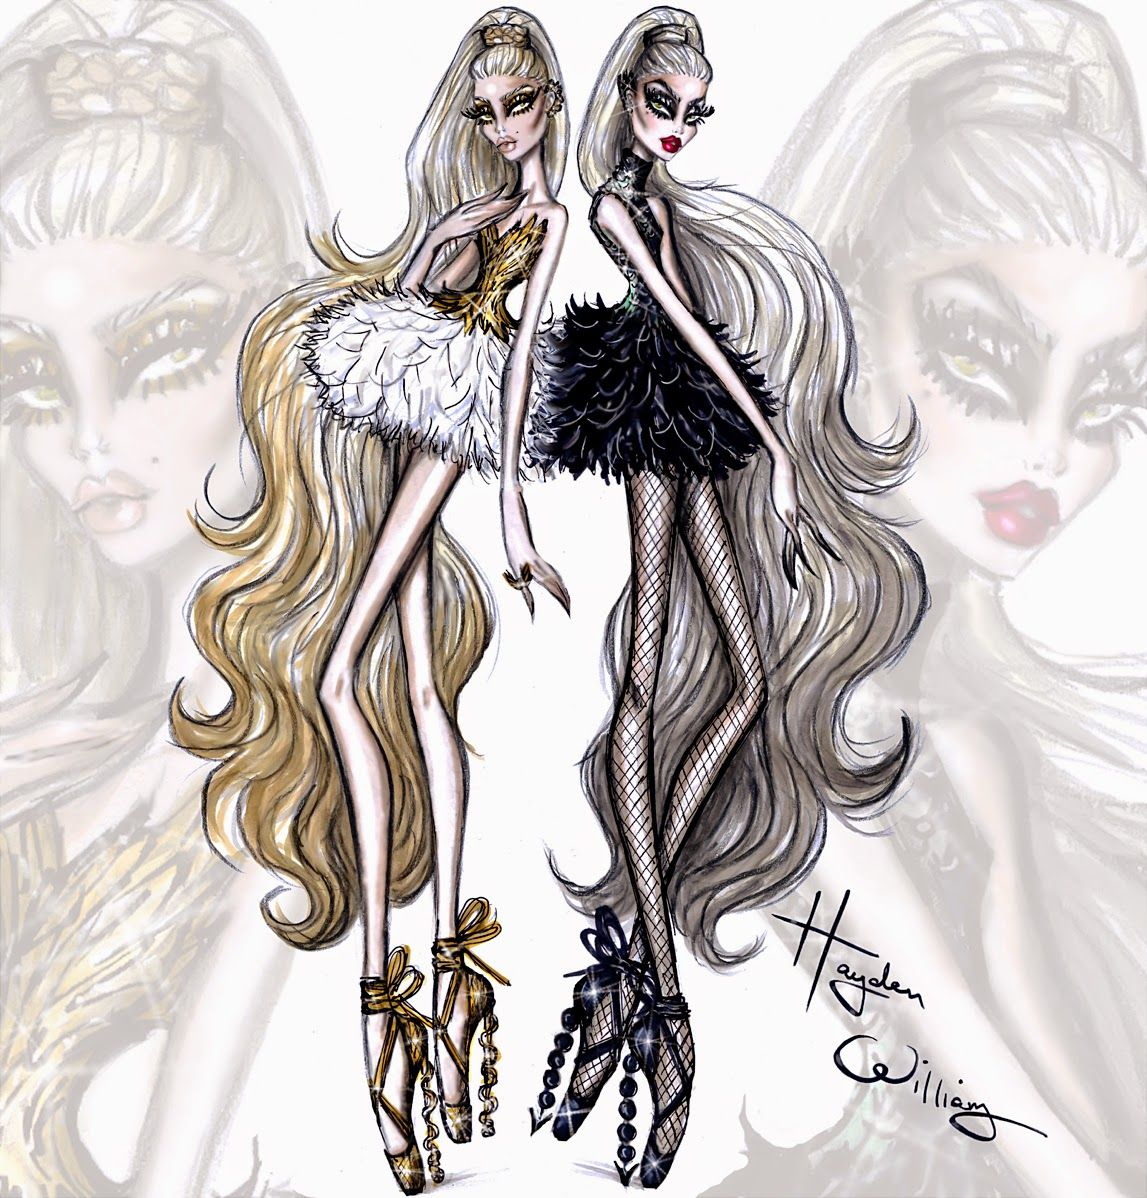 Hayden Williams Fashion Illustrations: Couture Ballet by Hayden Williams: 'Dual Danseuse'